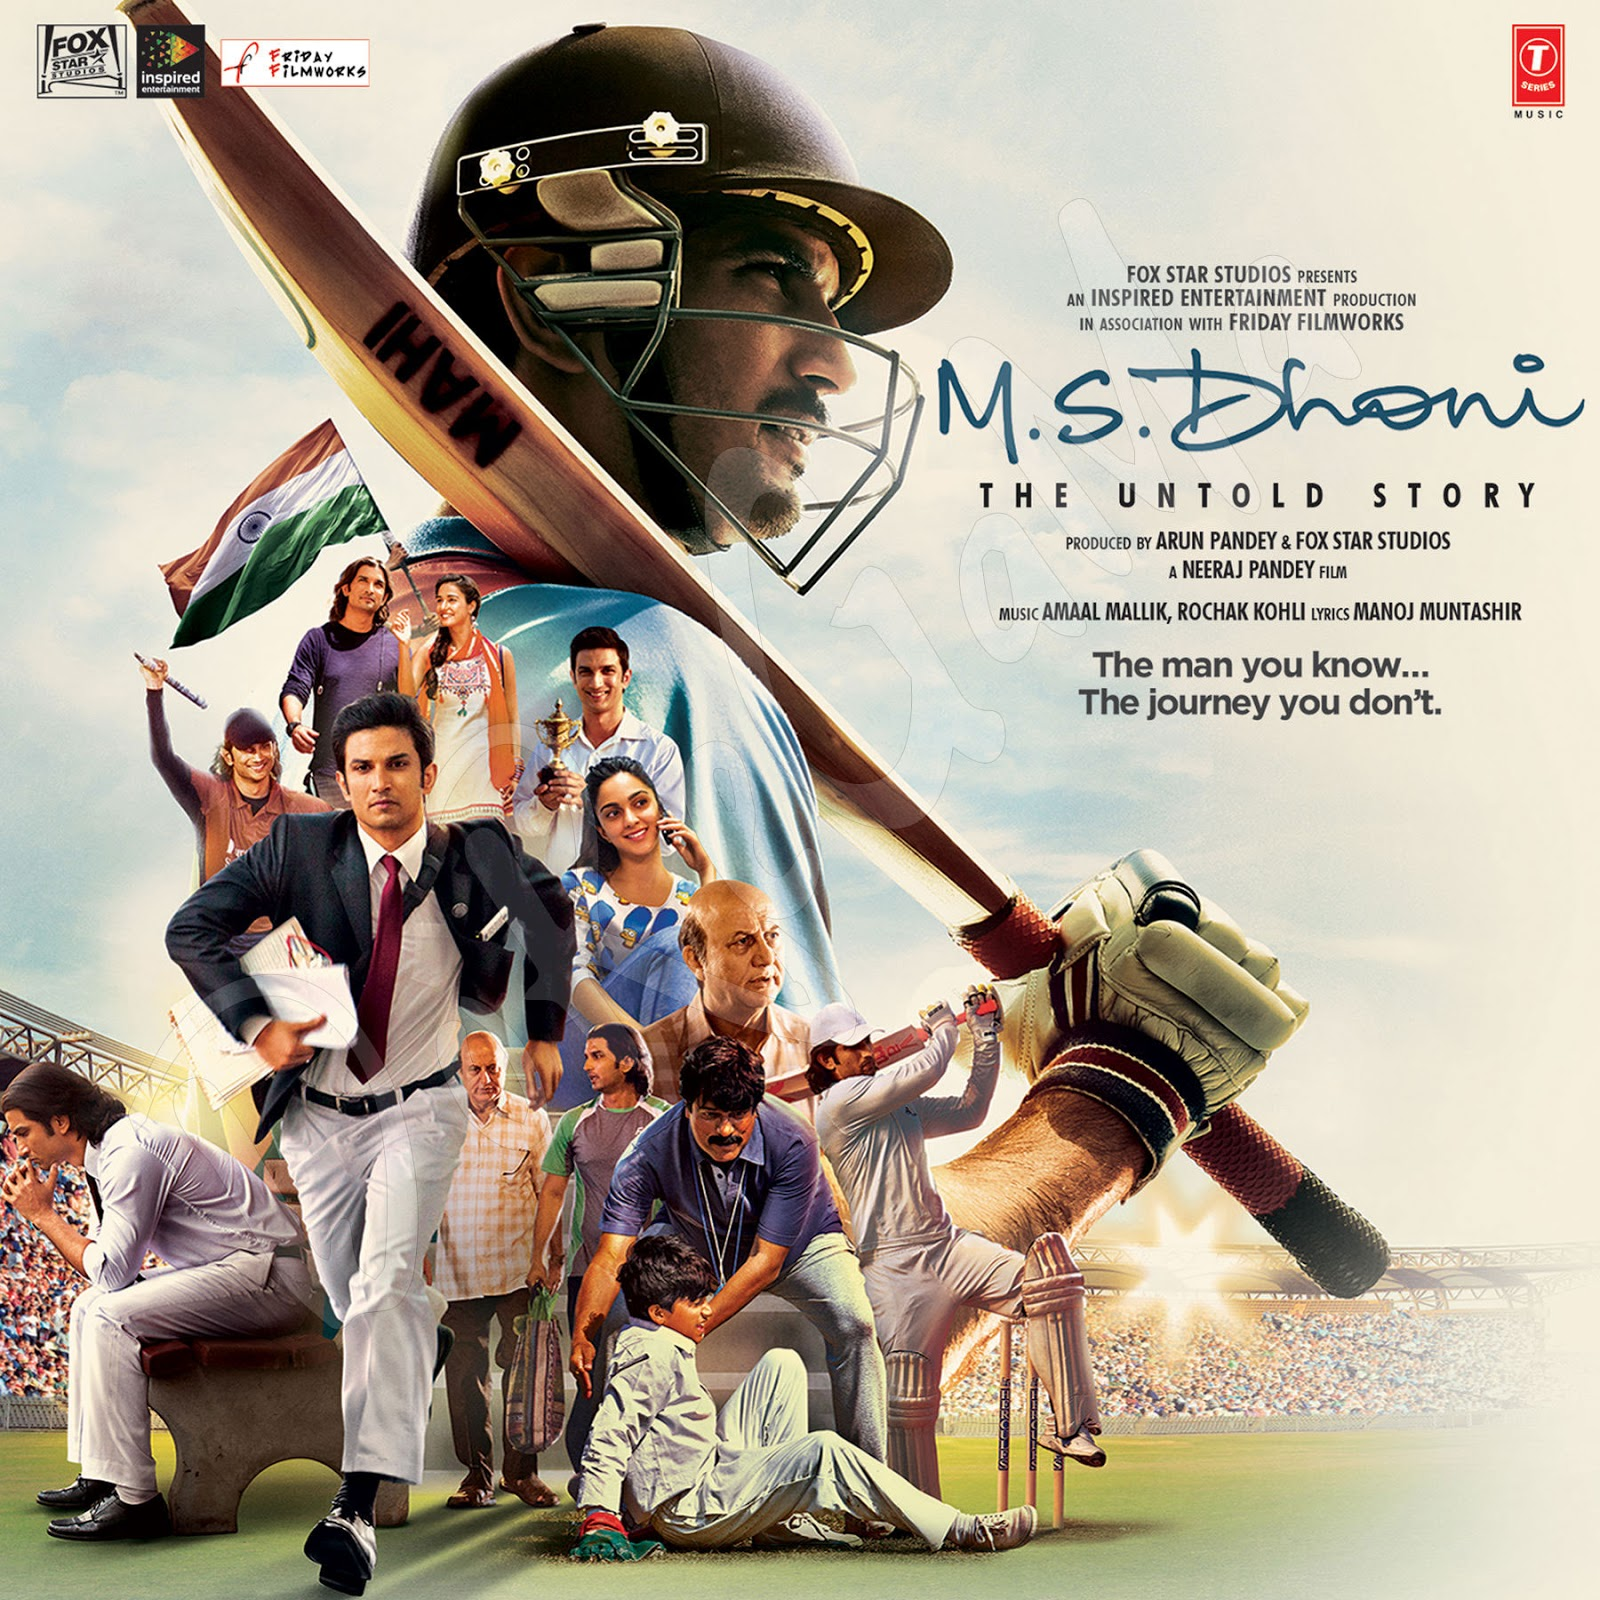 M.S. Dhoni 2016 Movie Songs CD Front Cover Poster wallpaper HD